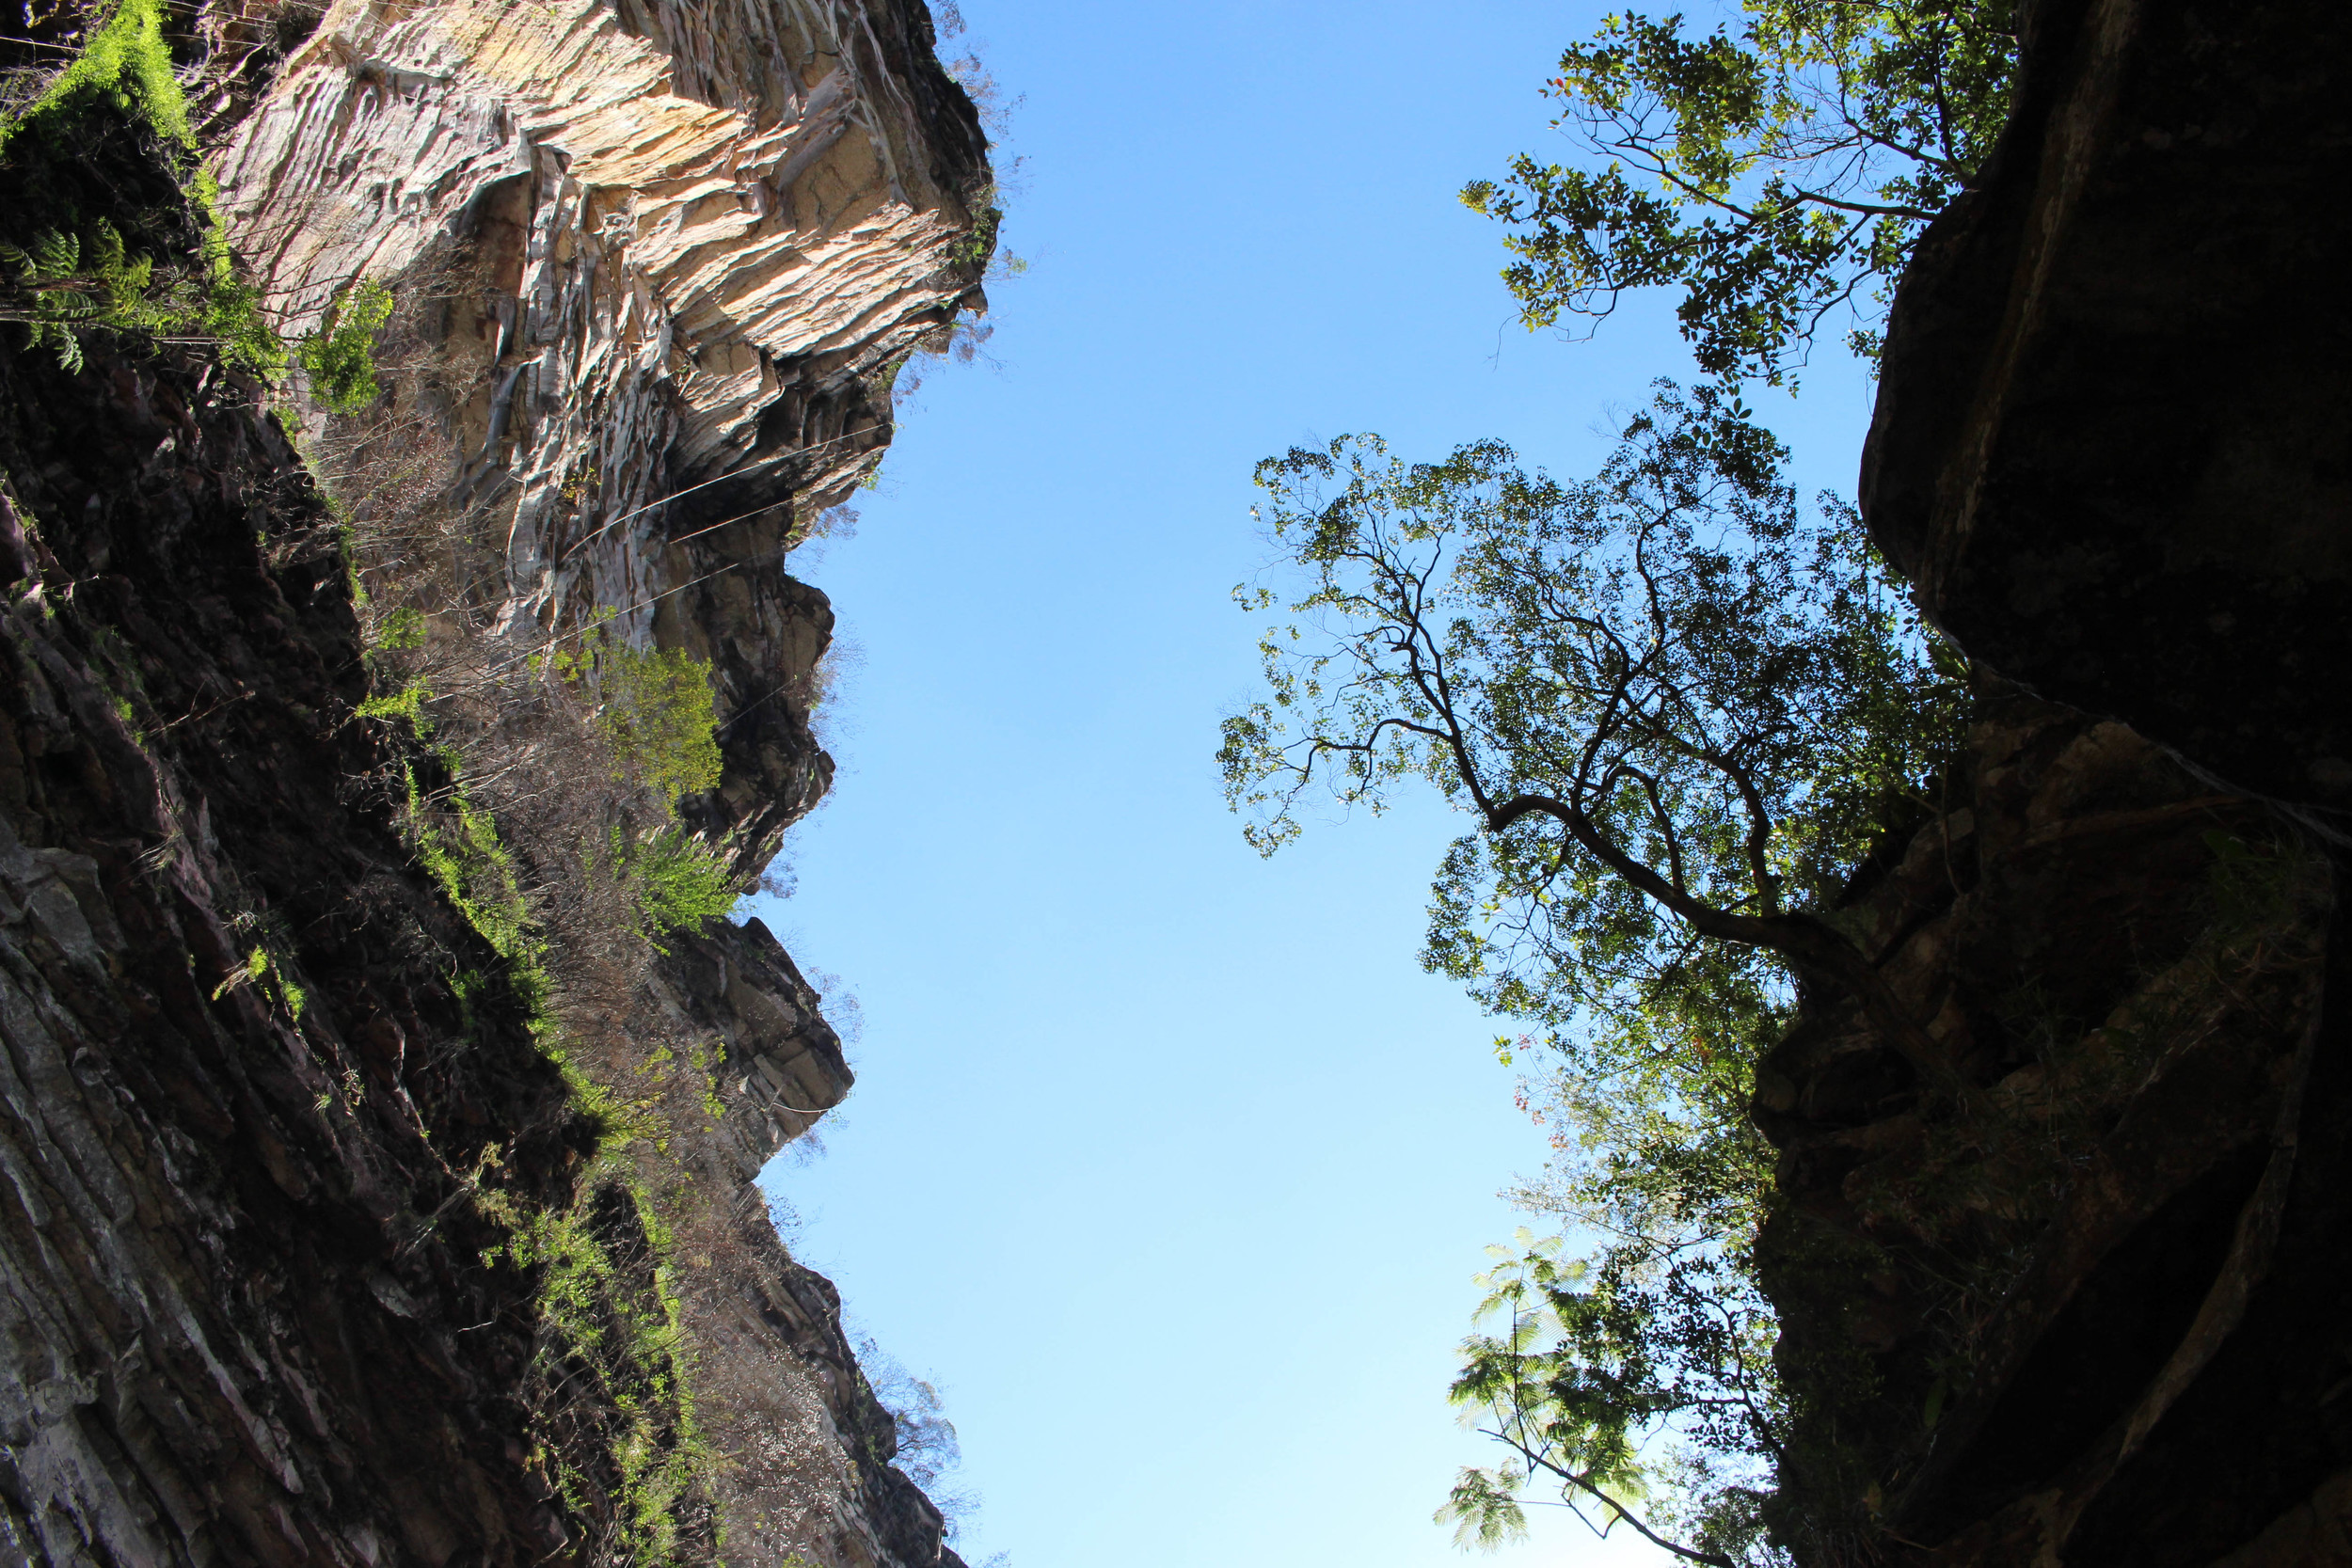 An upward view from the canyon.